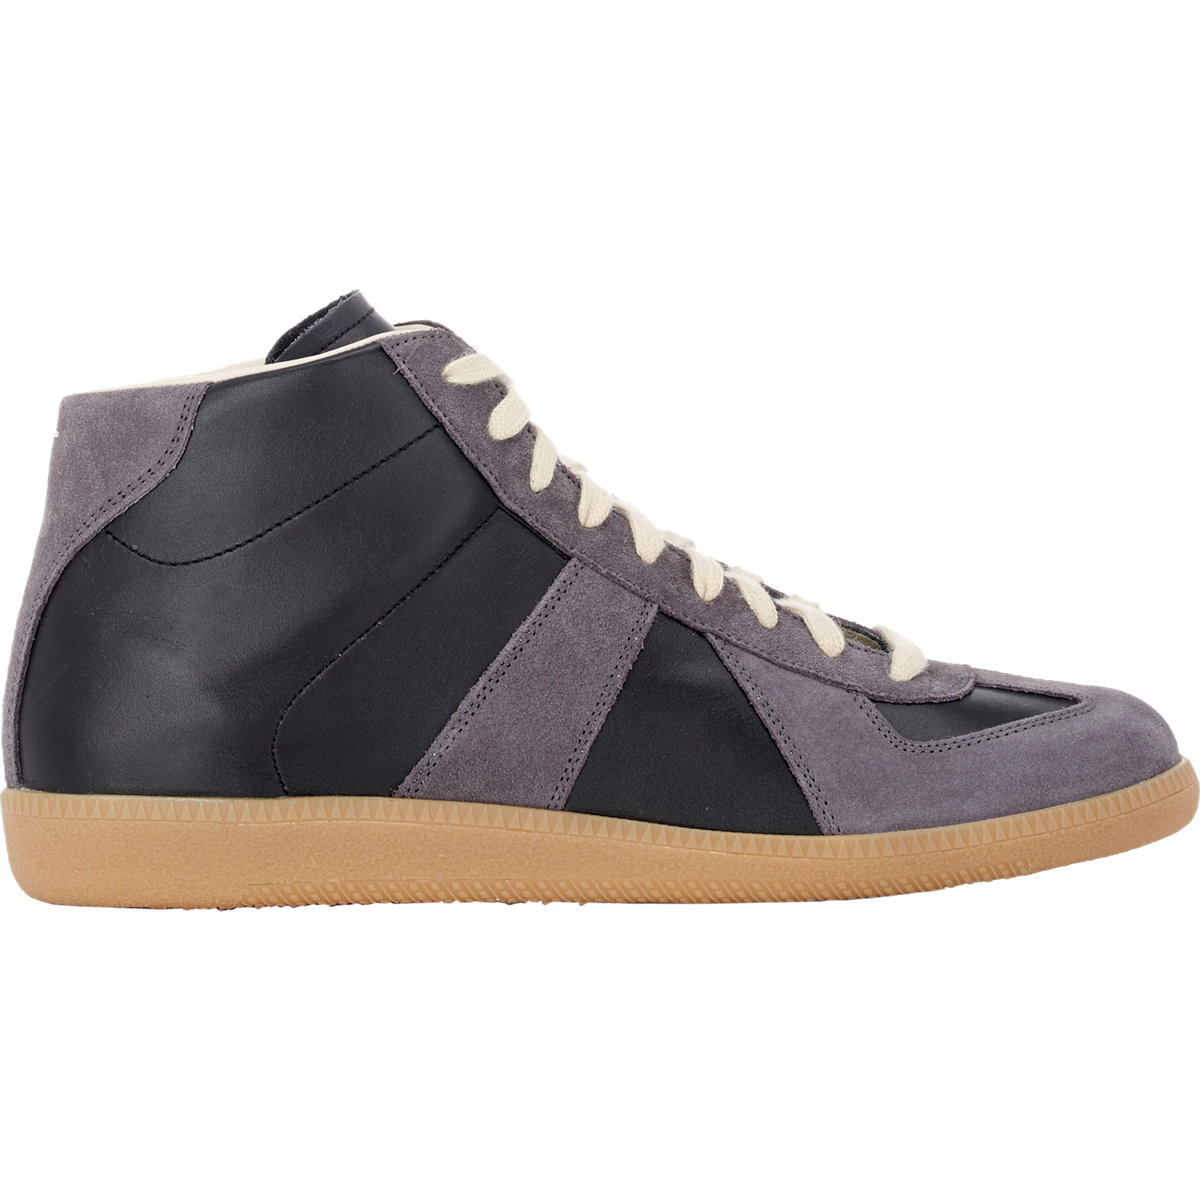 maison margiela mid top sneakers in black for lyst